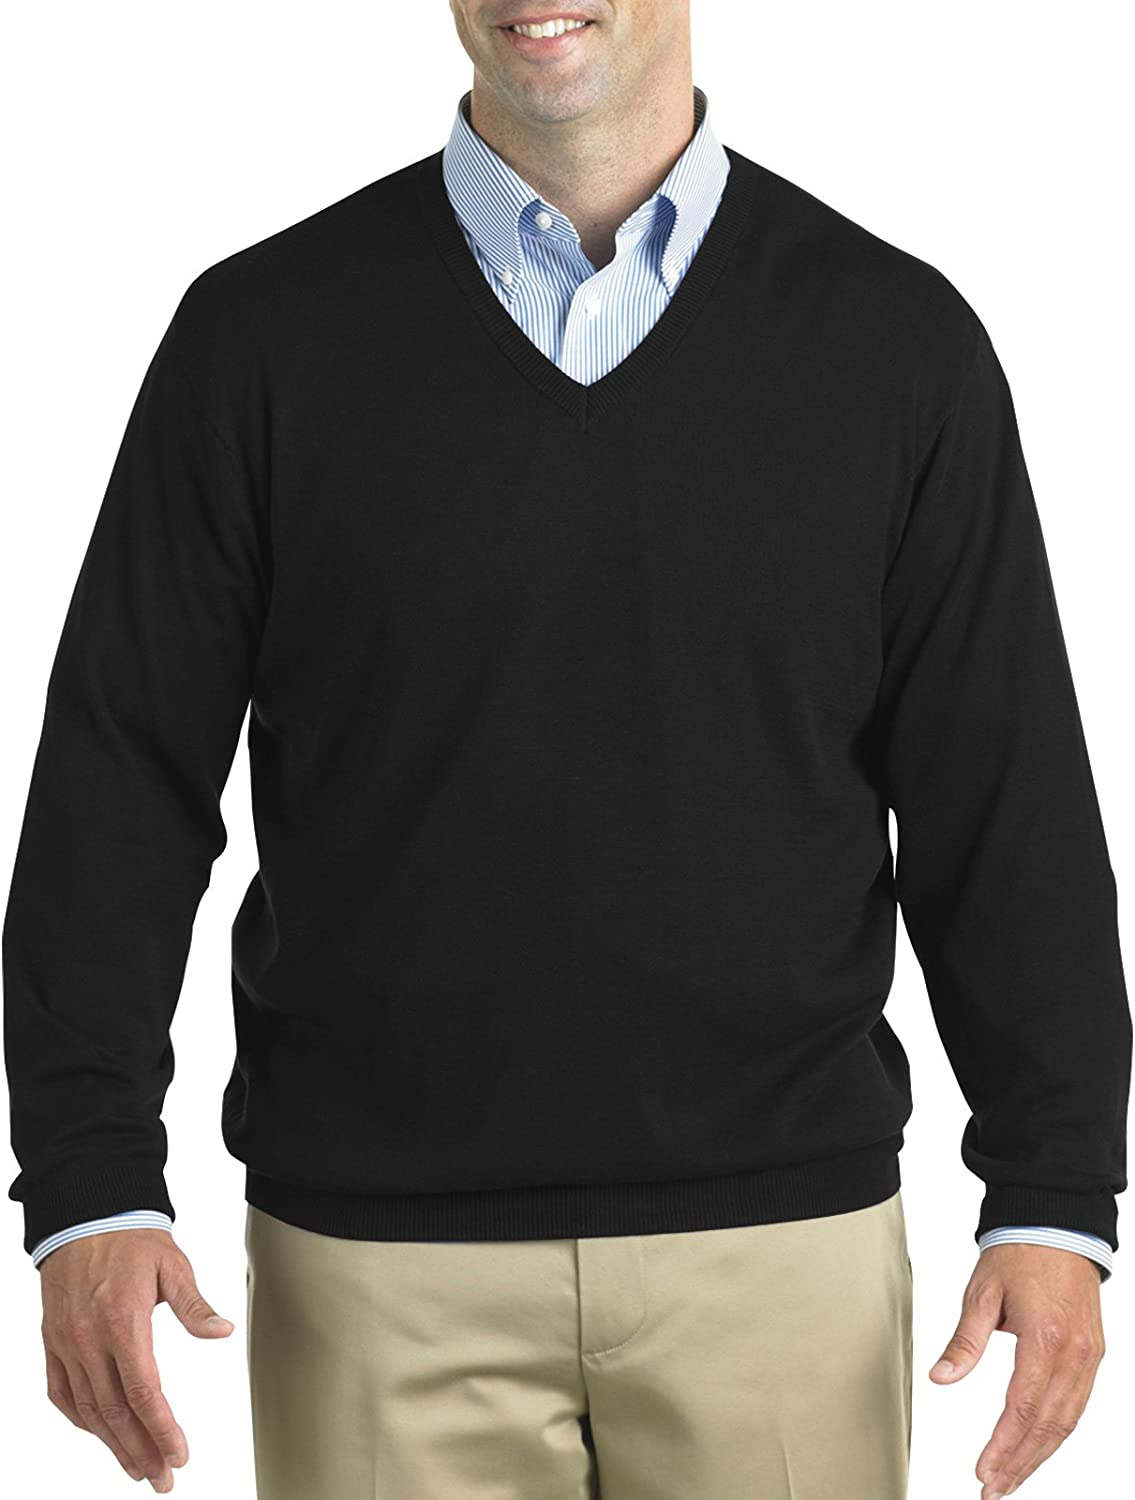 Harbor Bay by DXL Big and Tall V-Neck Pullover, Black, X-Large